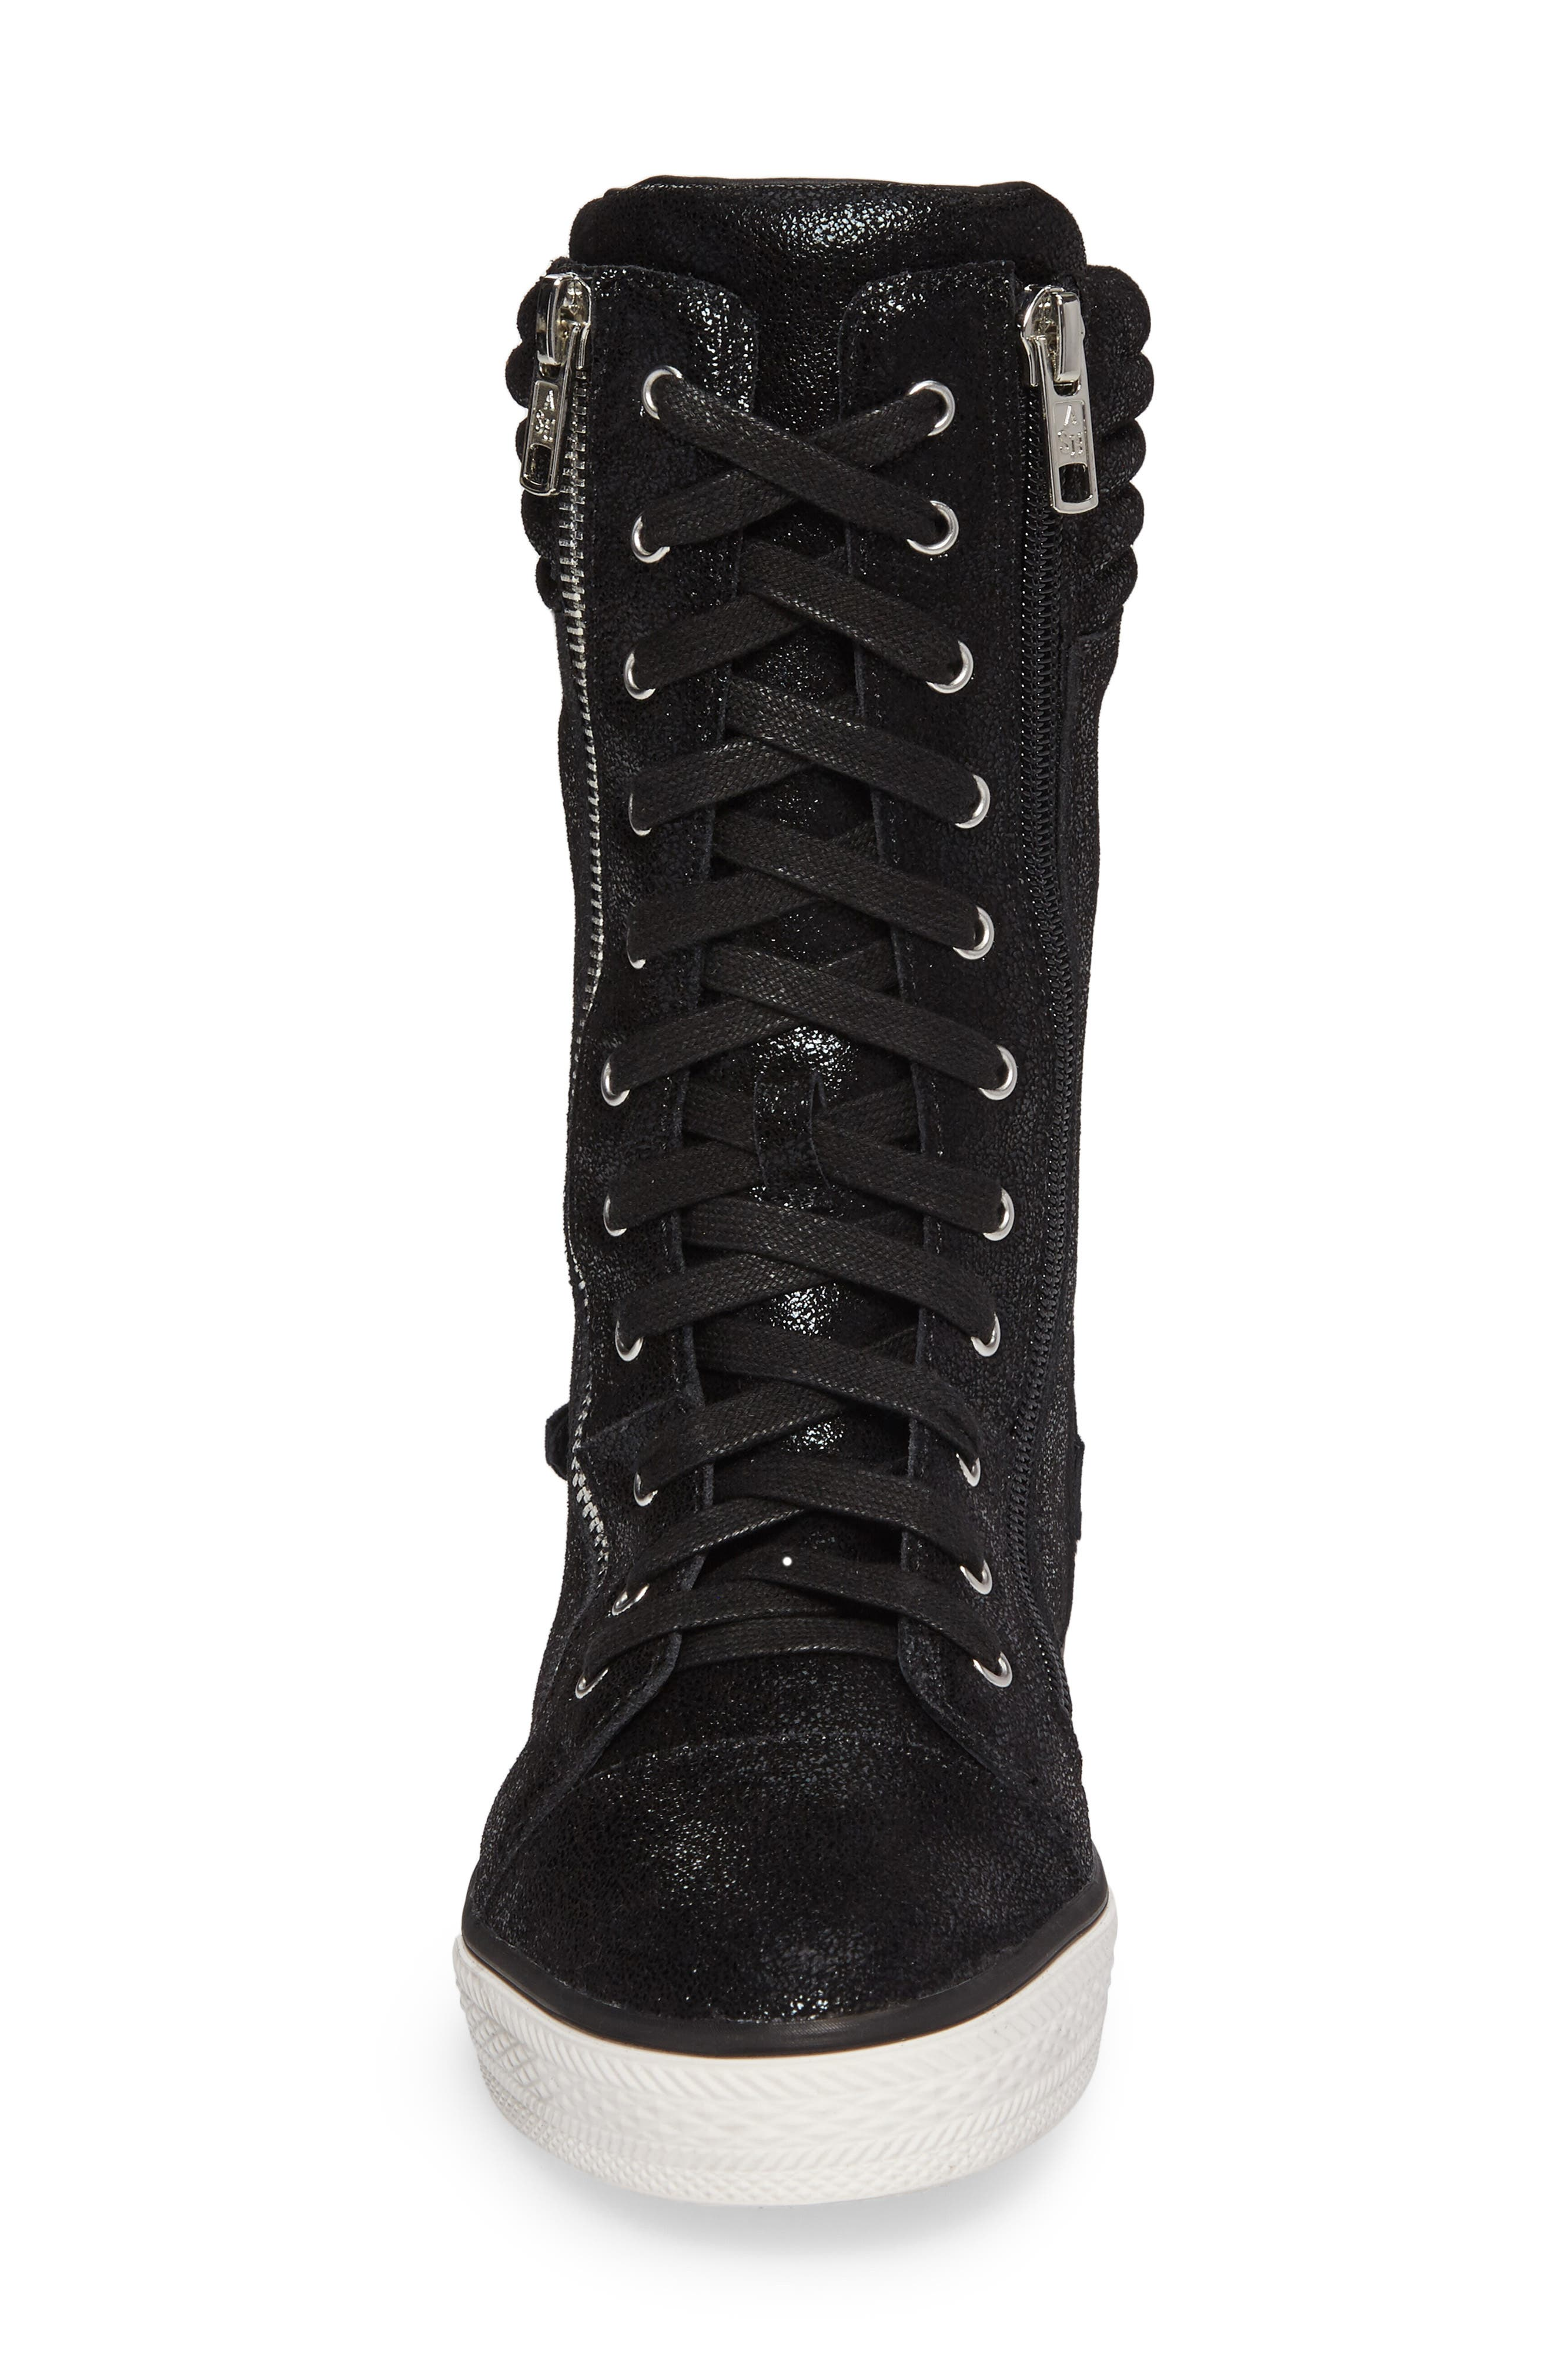 Vava Cate Ultra High Top Sneaker,                             Alternate thumbnail 4, color,                             001